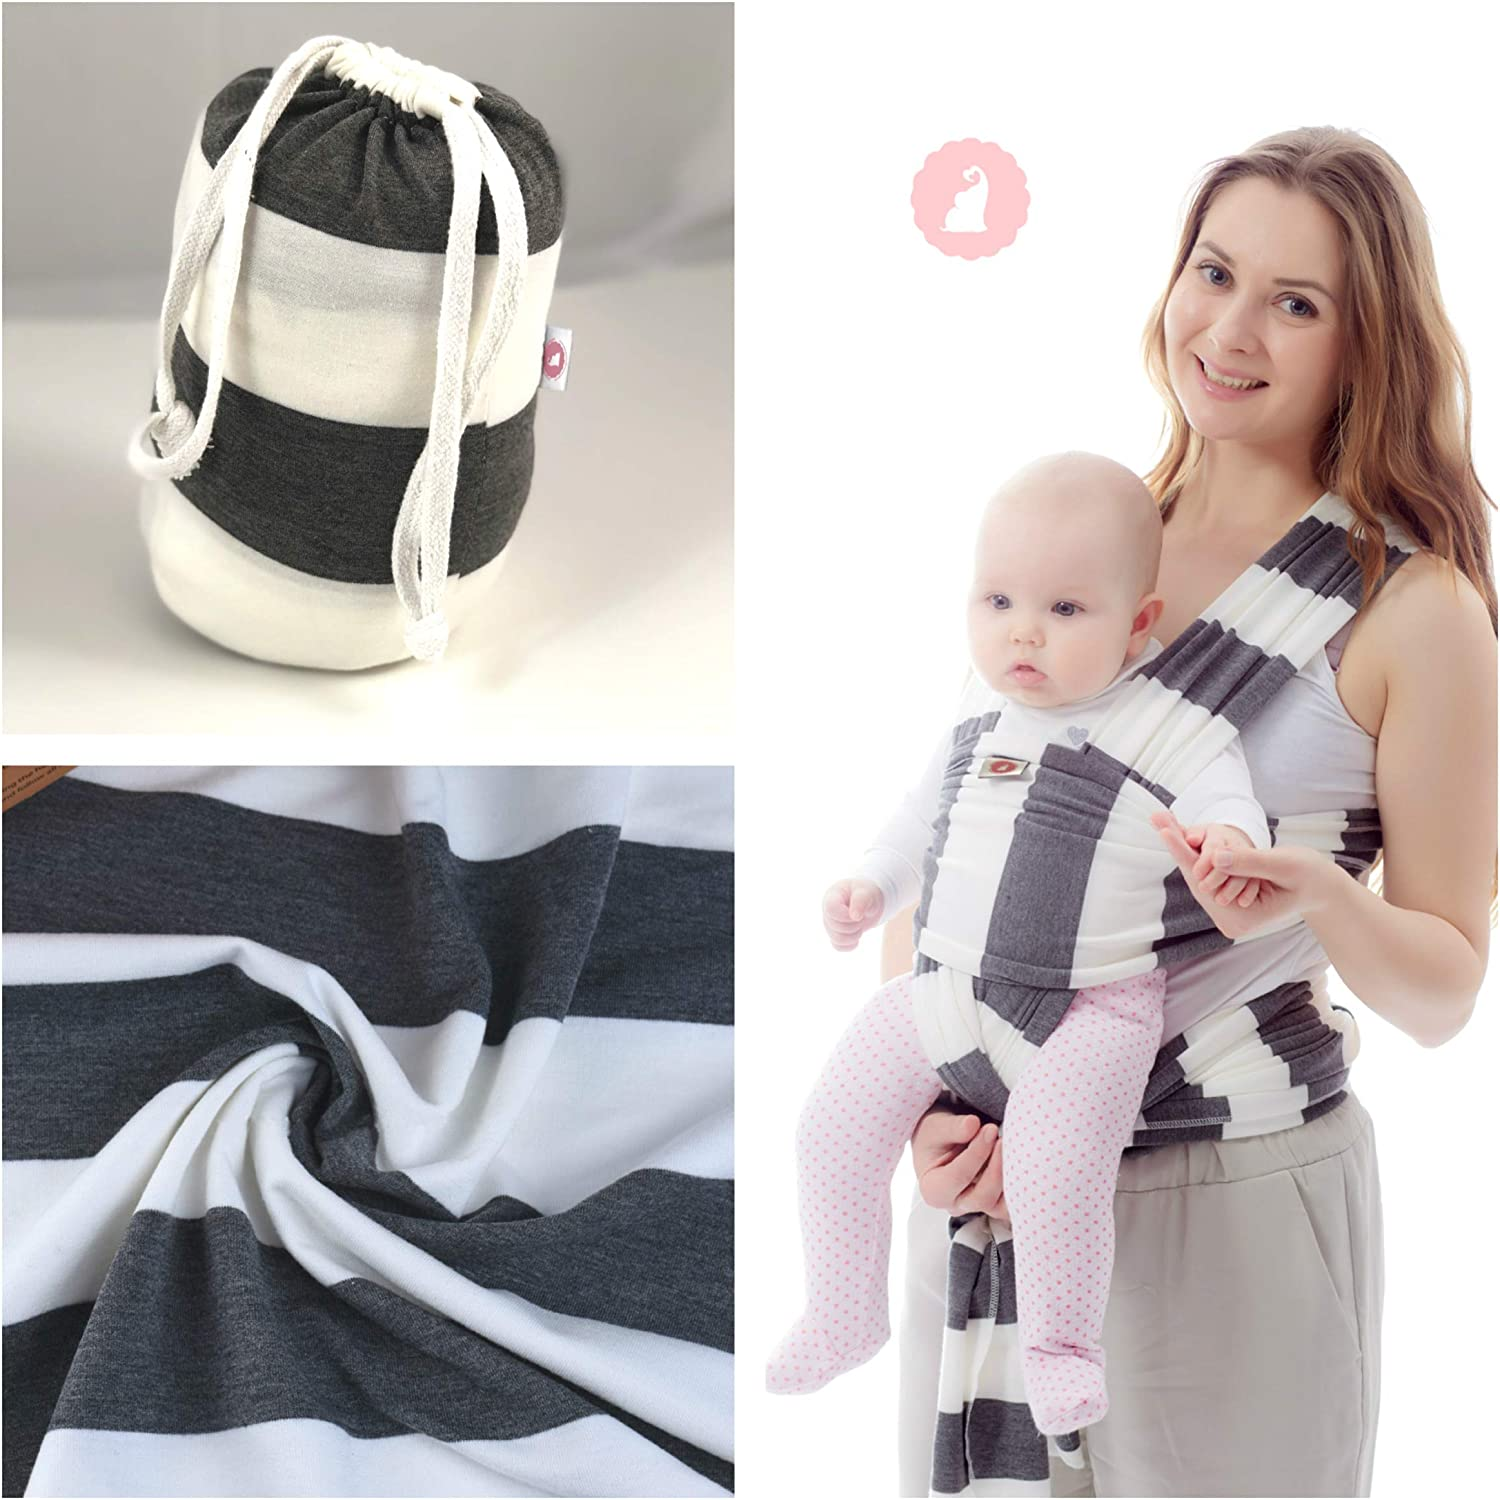 Stretchy Breathable /& Soft Adorables Baby Wrap Baby Carrier Baby Sling Grey White Colour